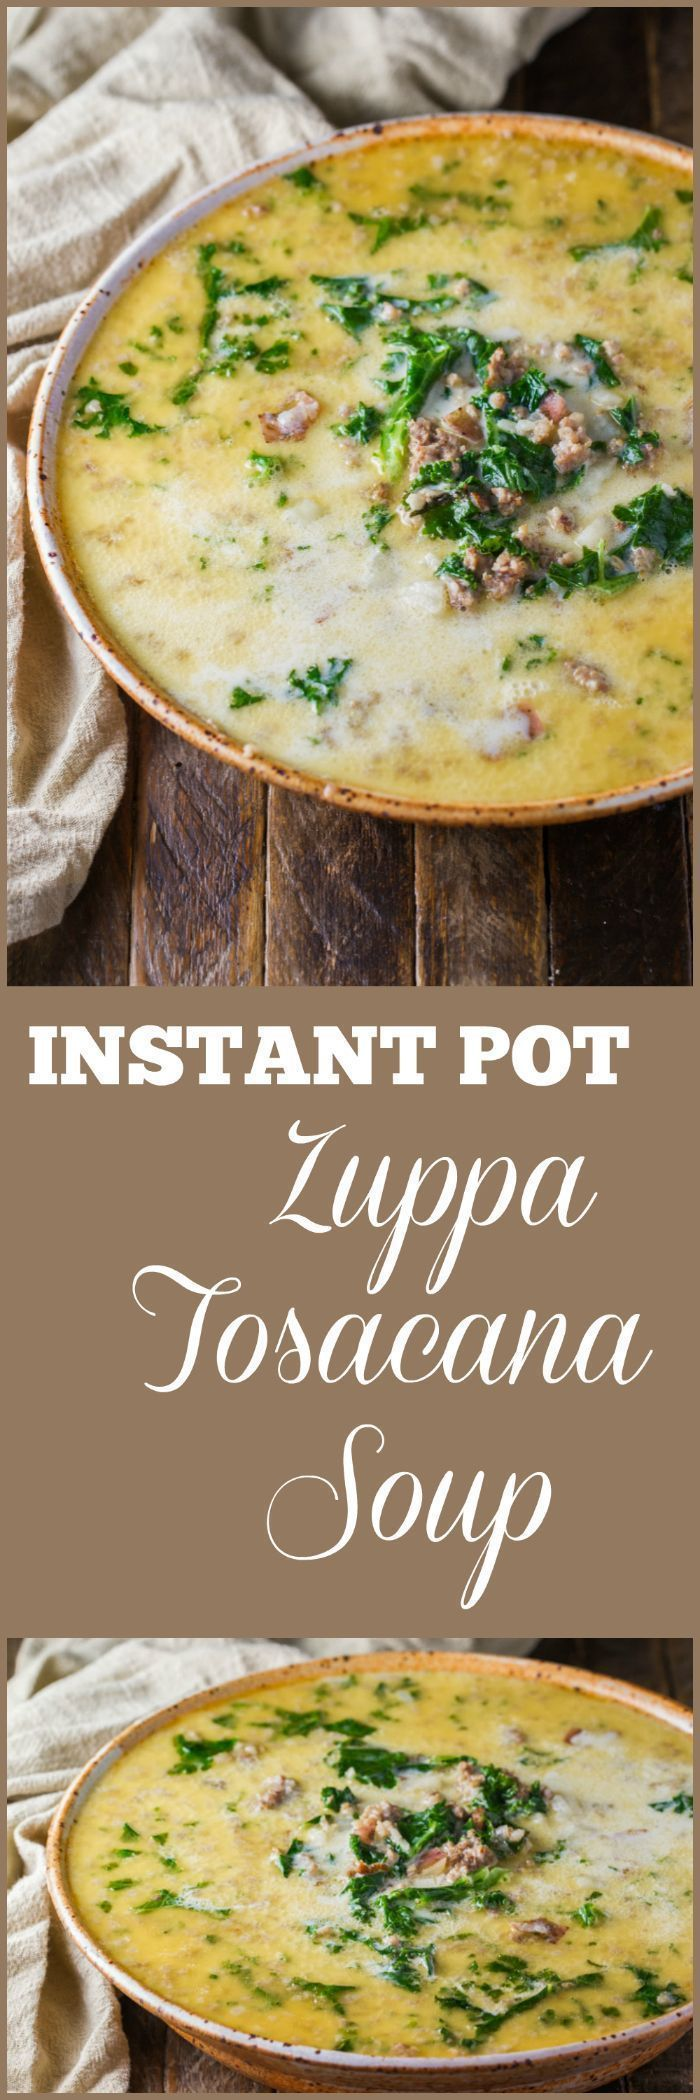 This Instant Pot Zuppa Toscana Soup is made with just seven ingredients and twelve minutes under pressure. So much flavor for such a simple soup! | #instantpotsoup #instantpotrecipe #olivegardencopycat #zuppatoscana #zuppatoscanasoup - enjoylife #zuppatoscanasoup